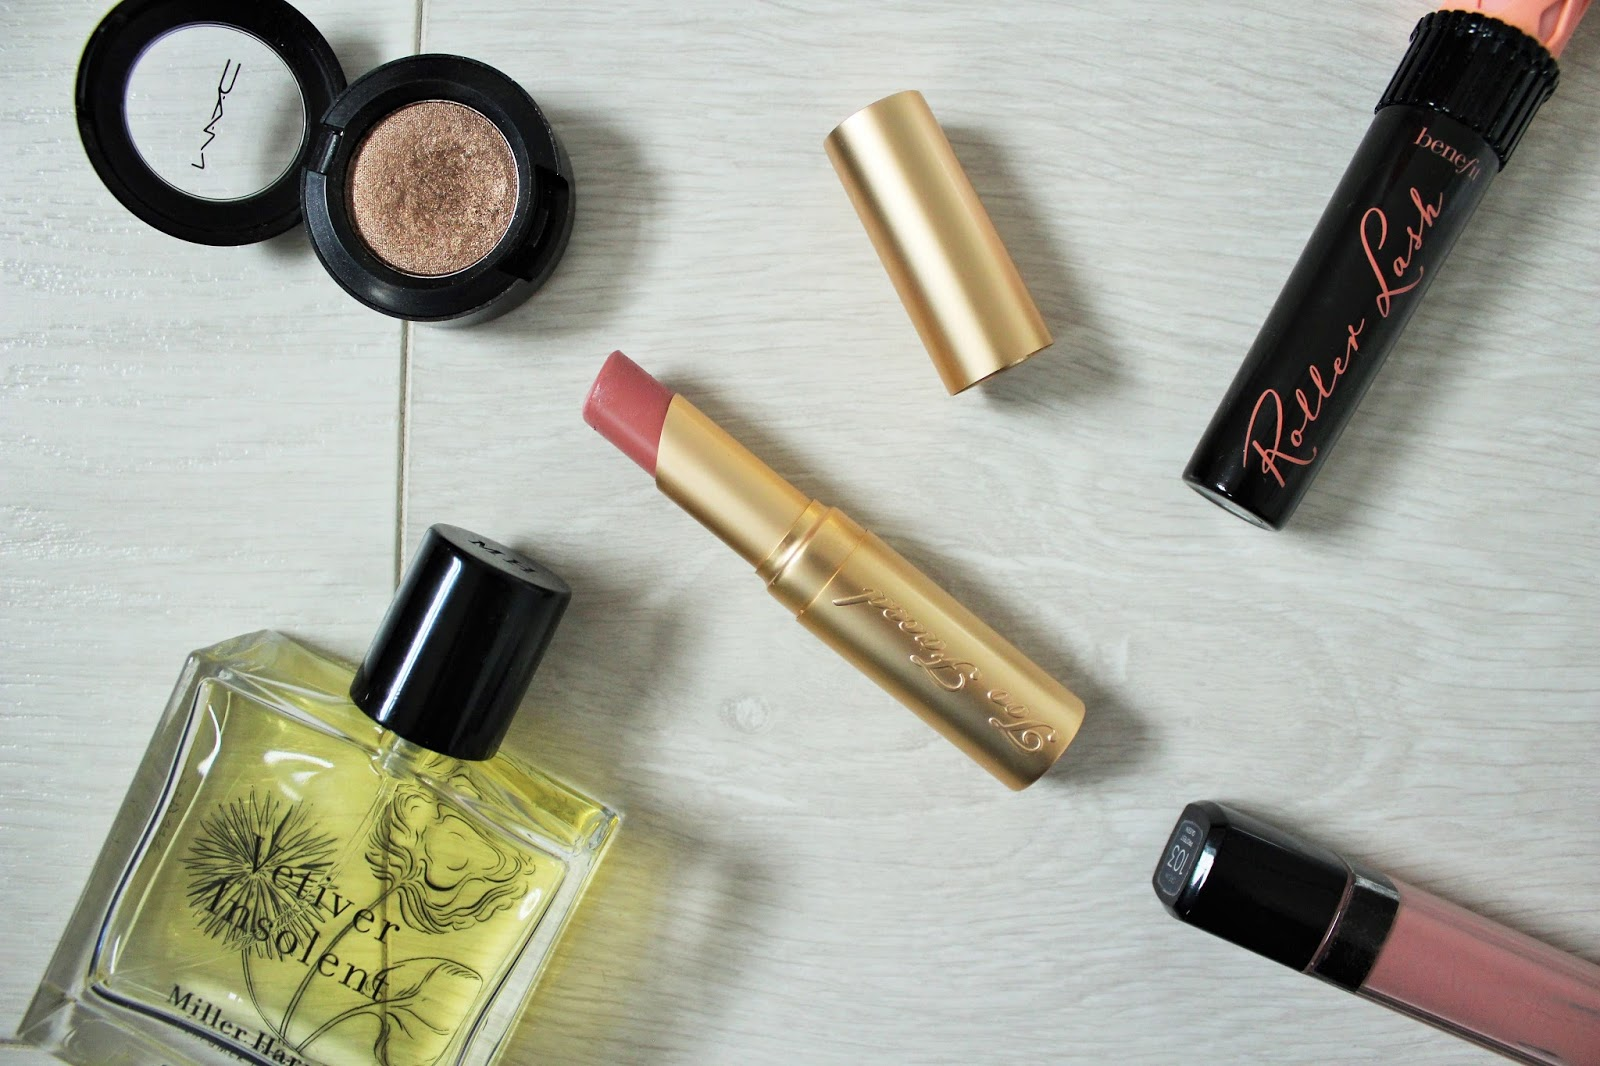 January Favourites featuring Benefit, Miller Harris, Mac, Too Faced, L'Oreal and H&M - 2